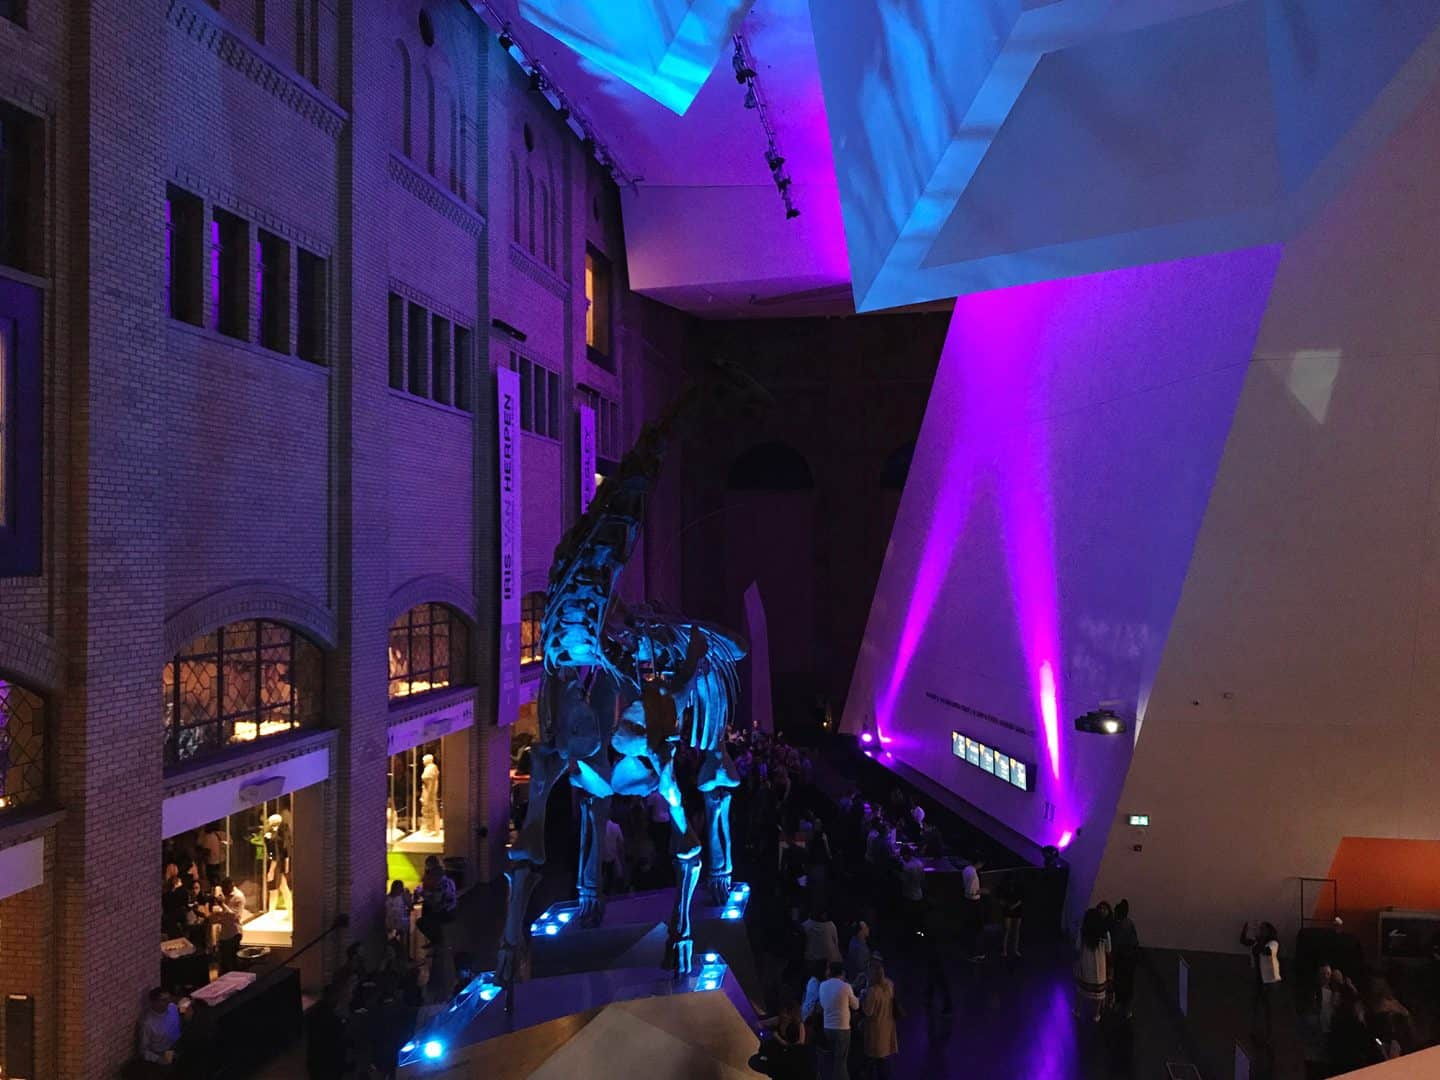 Enjoy art, music, drinks at food at the ROM After Dark